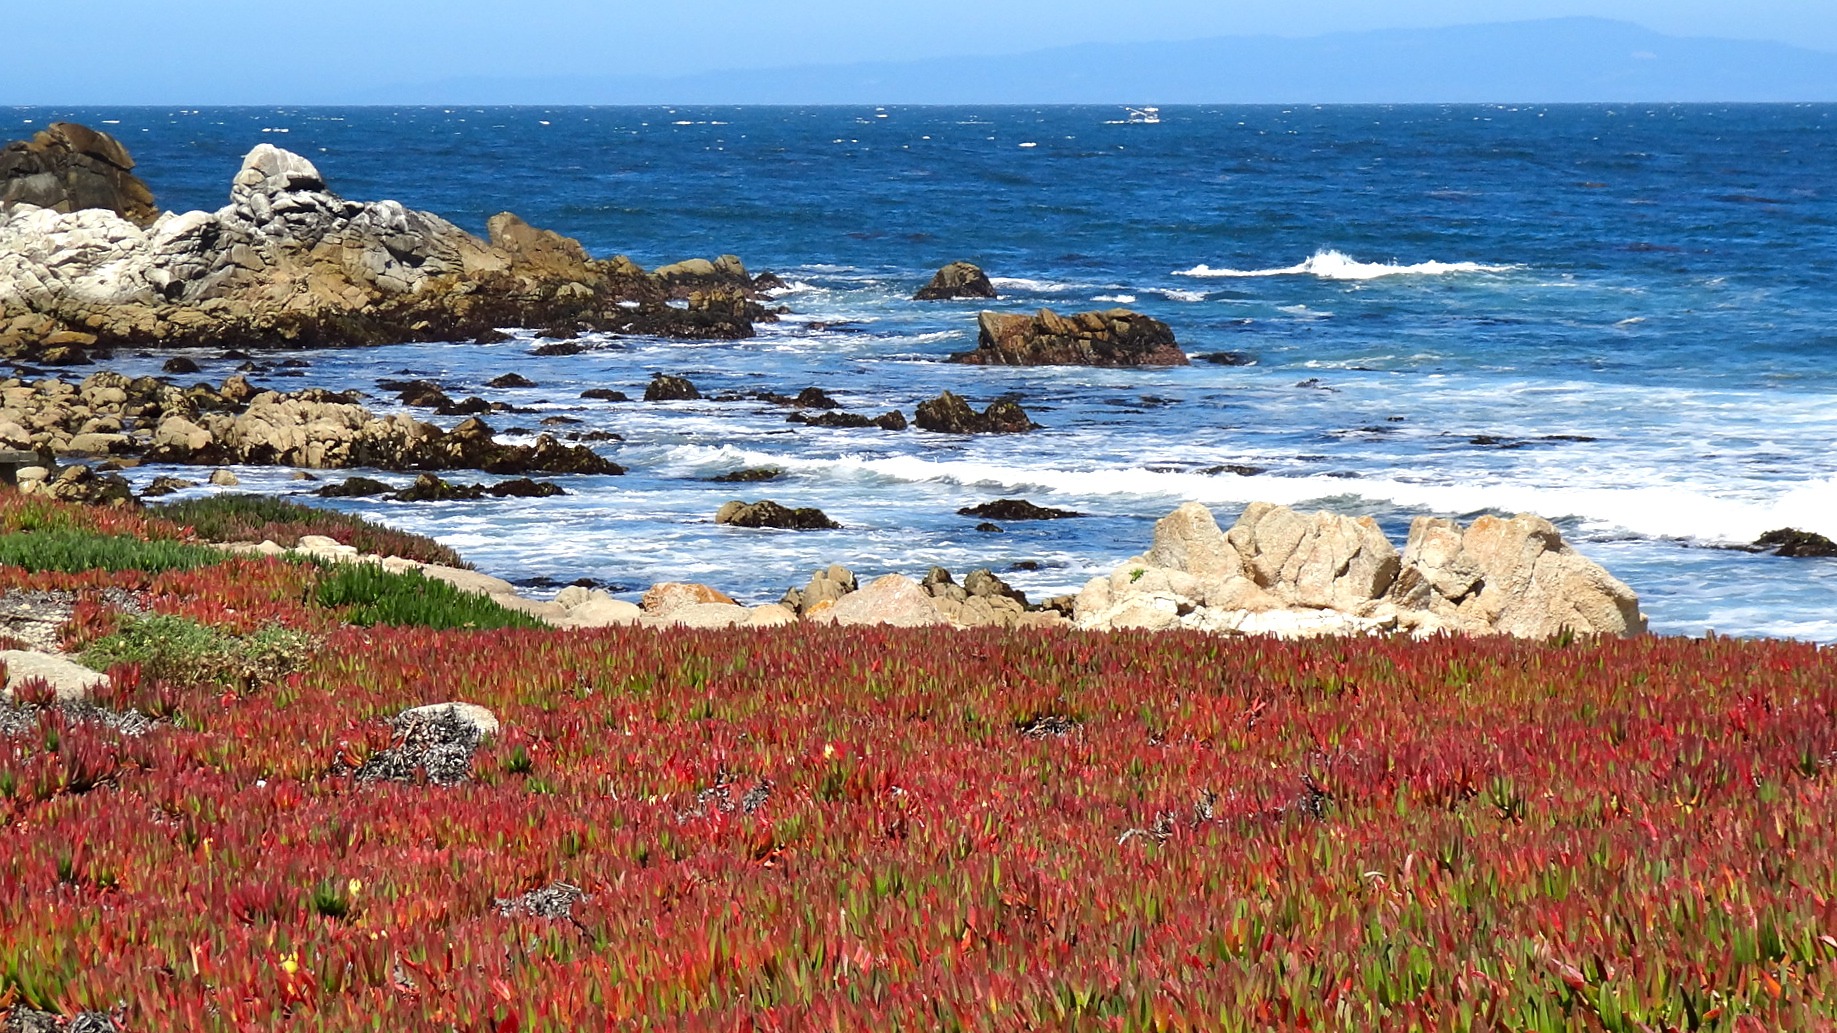 Pacific Grove beauty